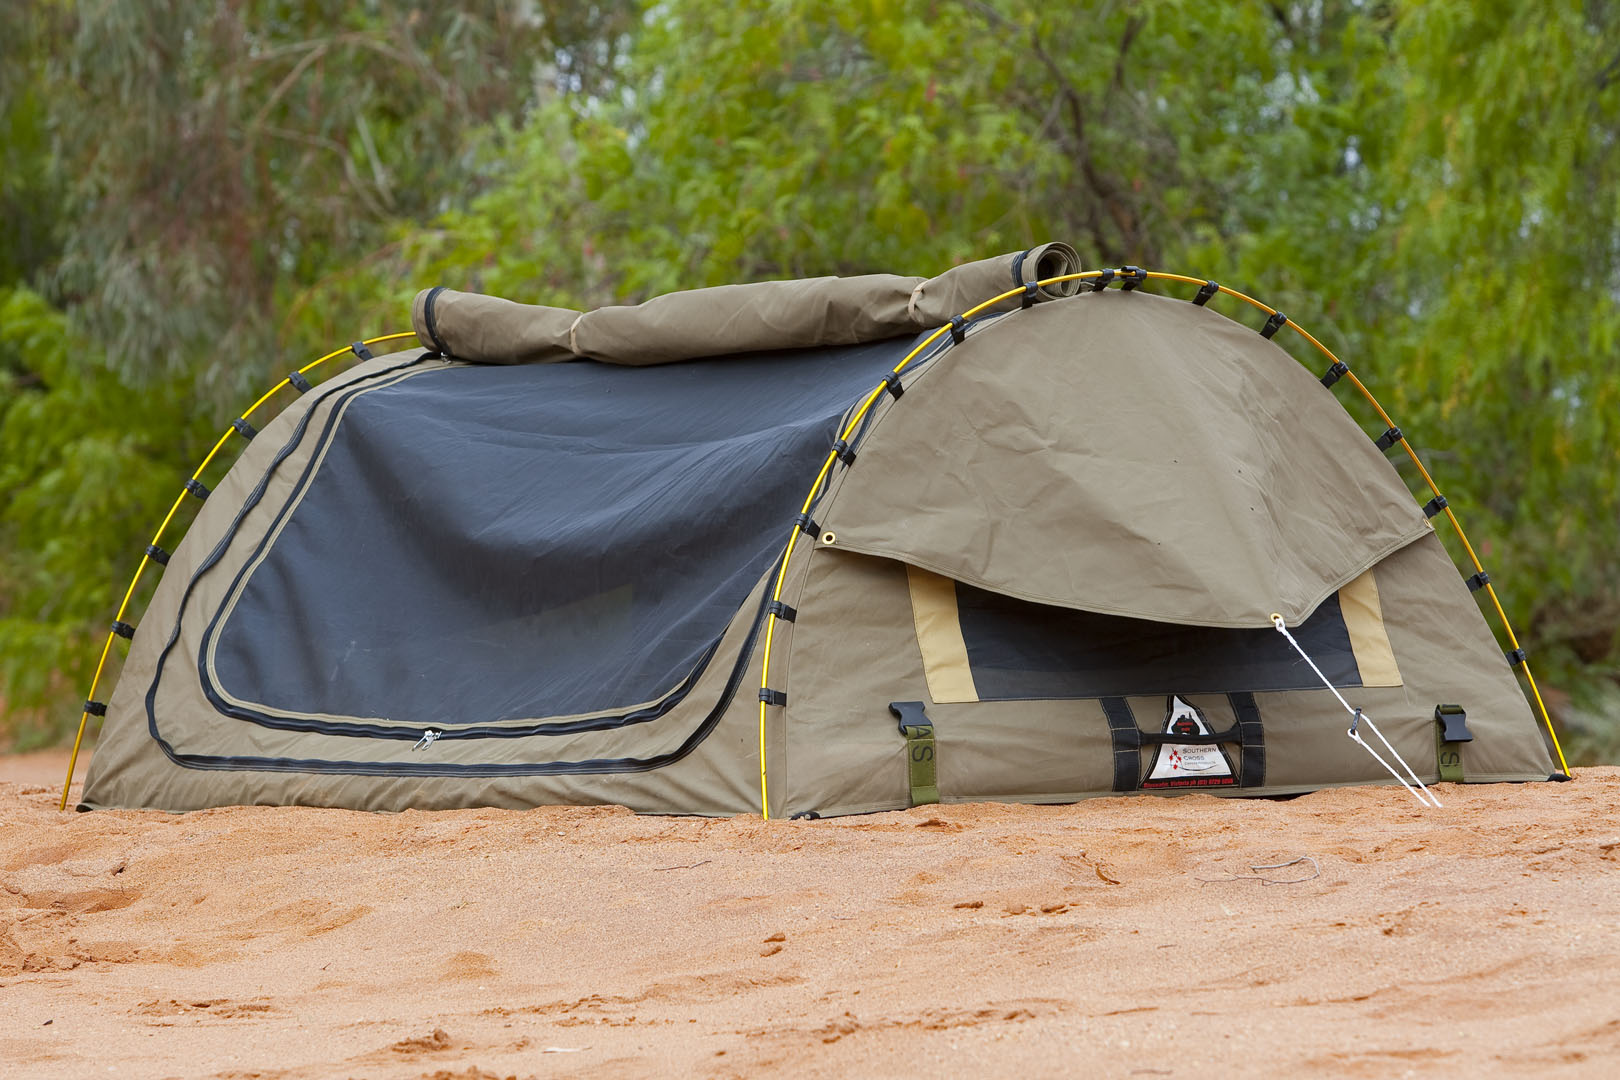 Camping Swags vs Tents: Which One is Right For You?